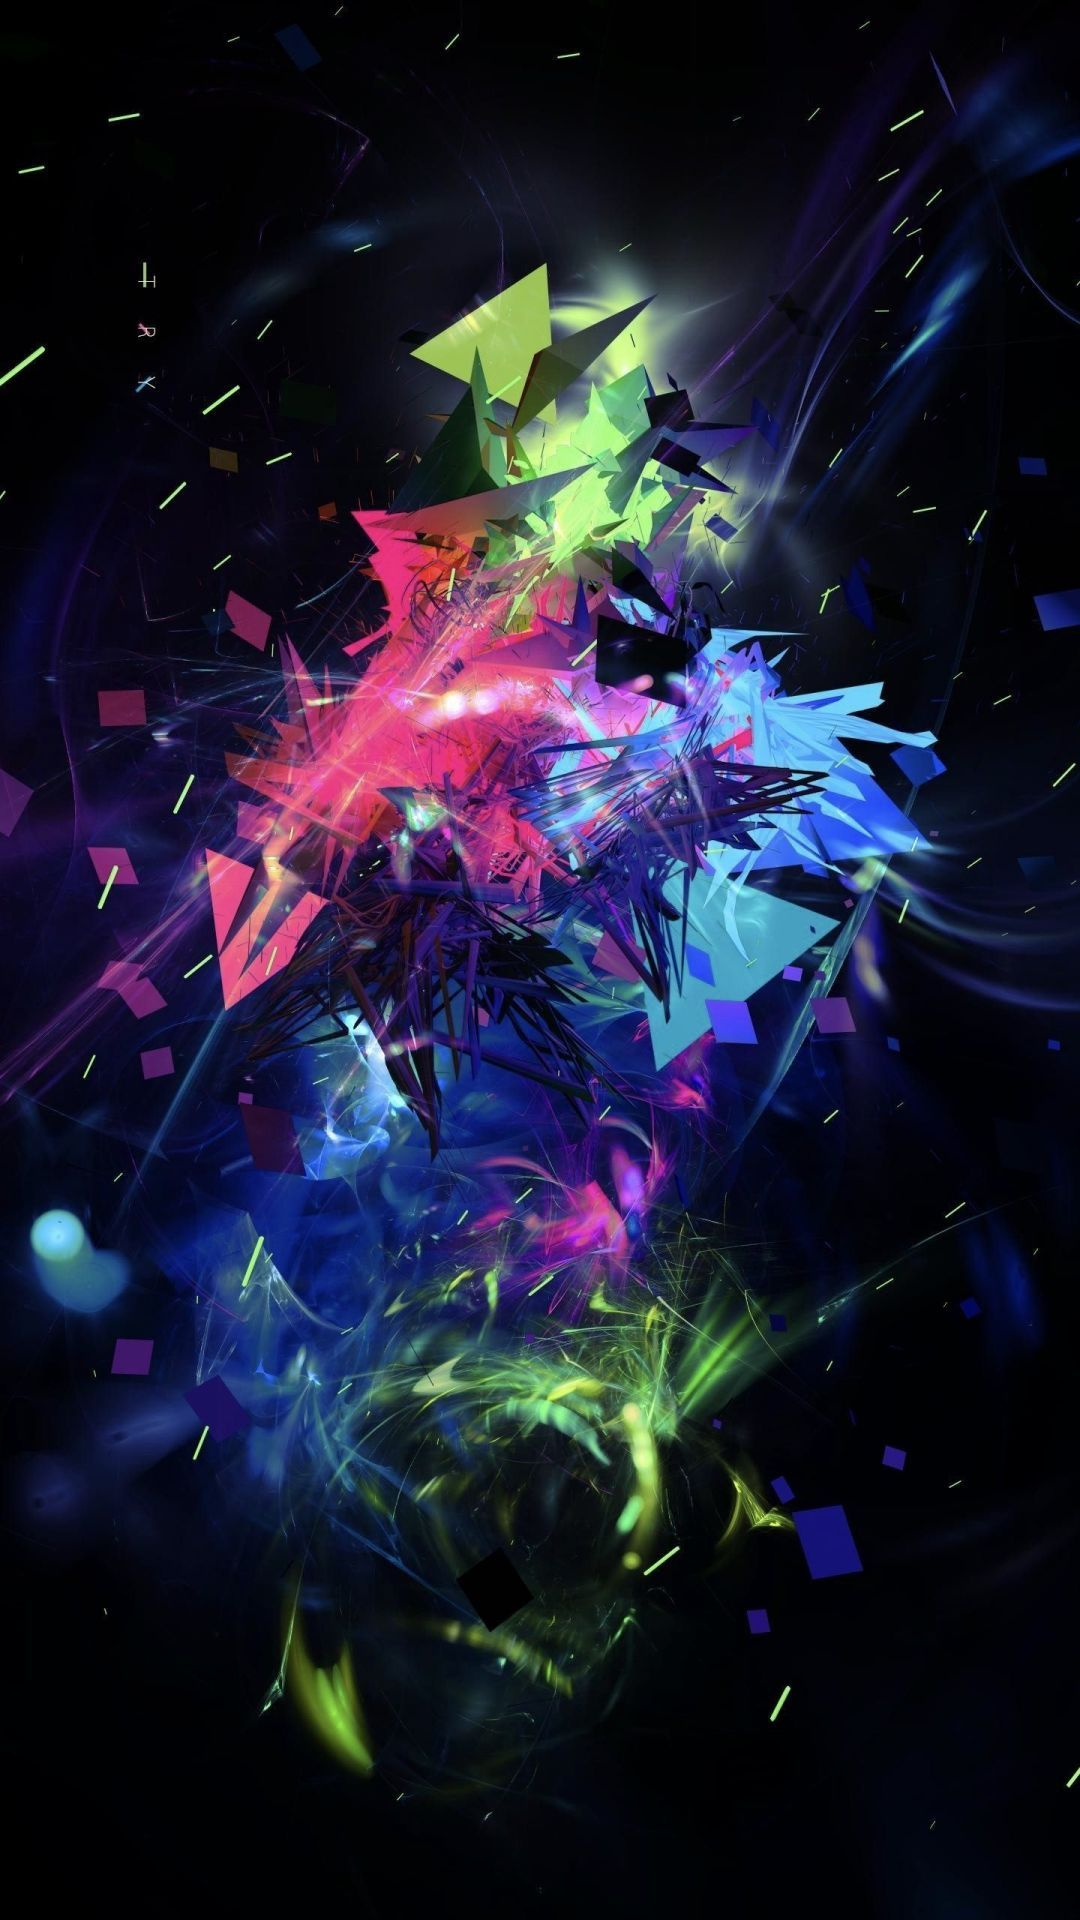 Popular Abstract Android Iphone Desktop Hd Backgrounds Wallpapers 1080p Abstract Wallpaper Backgrounds Abstract Iphone Wallpaper Funny Phone Wallpaper